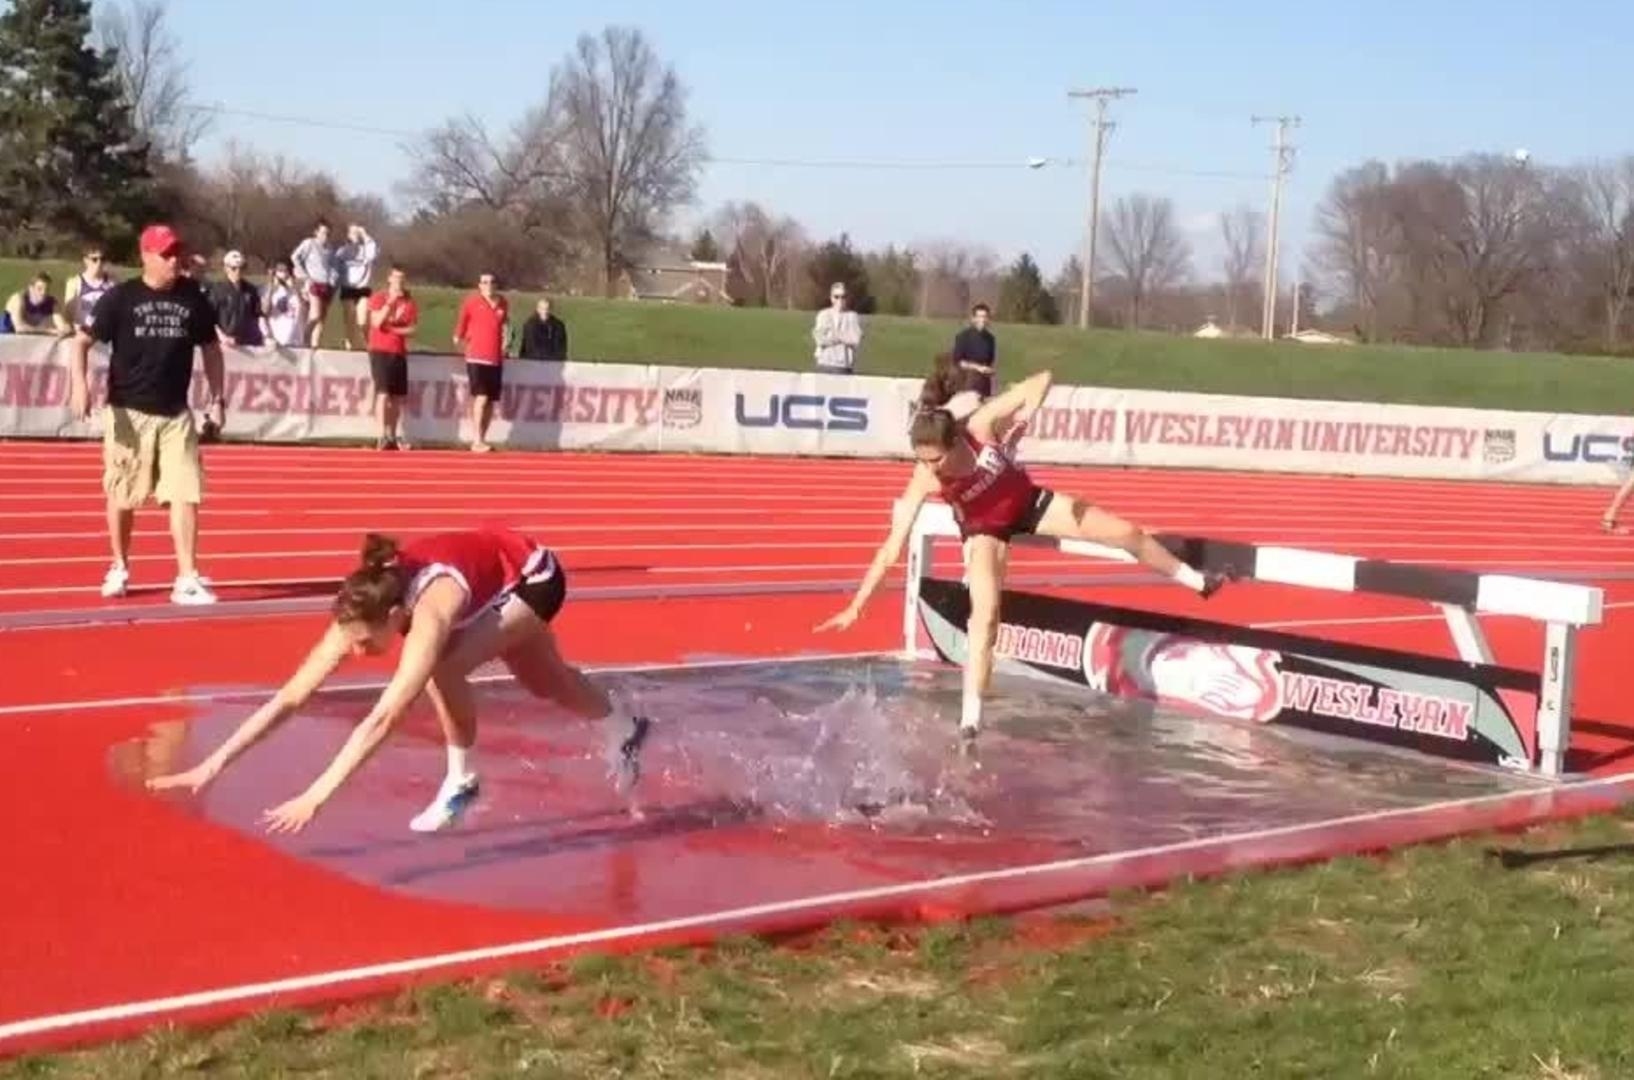 Steeplechase runner faceplants into water jukin media for Steeplechase